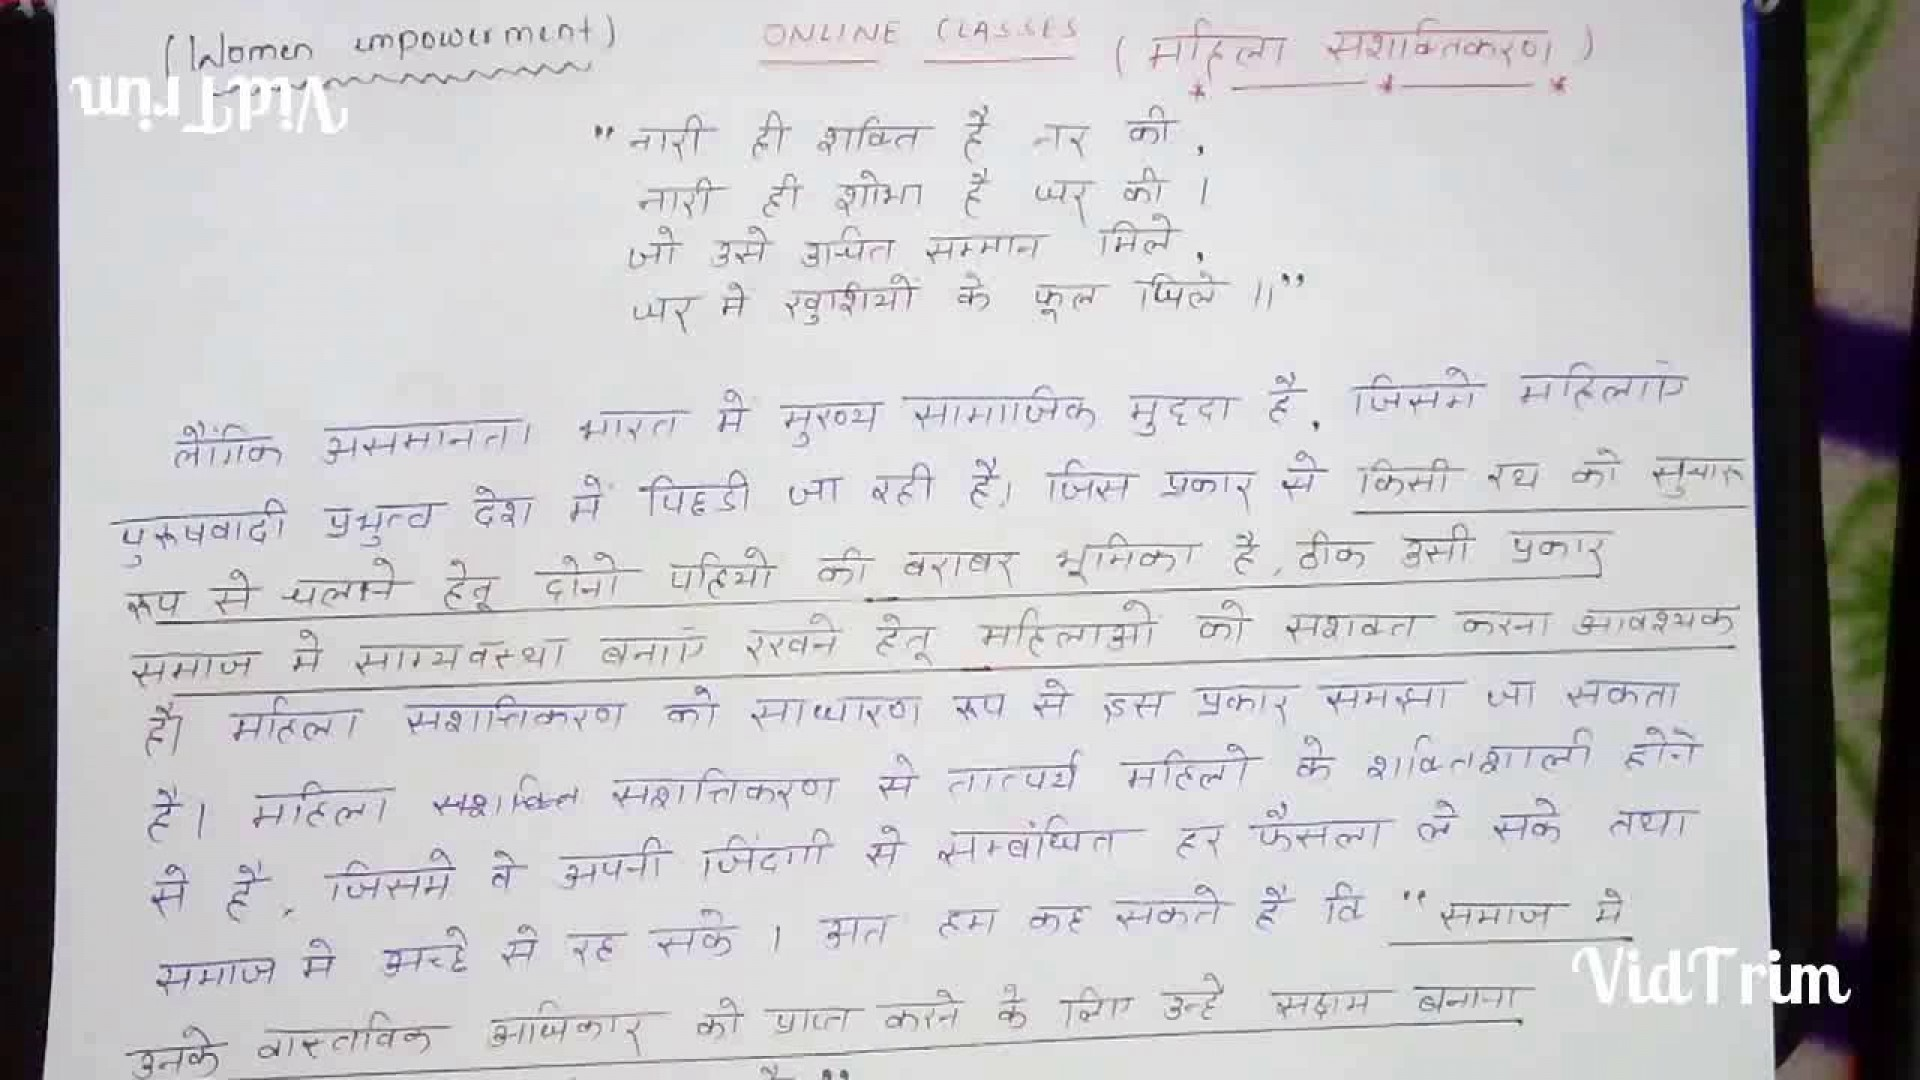 027 Essay On Women Example Incredible Women's Rights In India Short Empowerment 1920